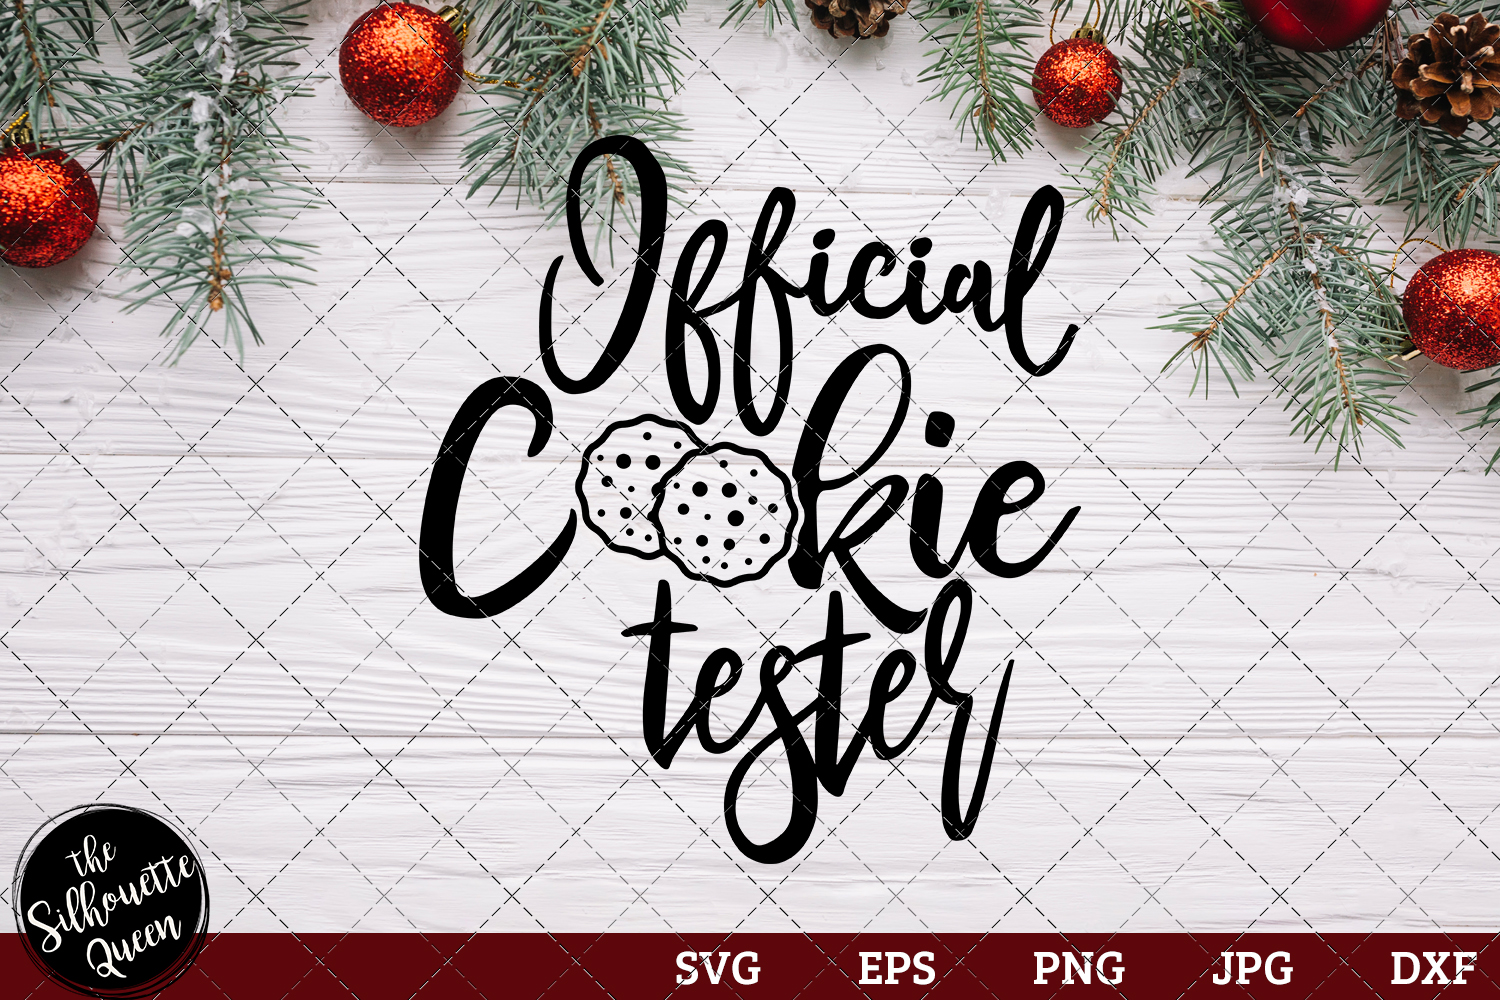 Download Free Official Cookie Tester Saying Graphic By Thesilhouettequeenshop for Cricut Explore, Silhouette and other cutting machines.